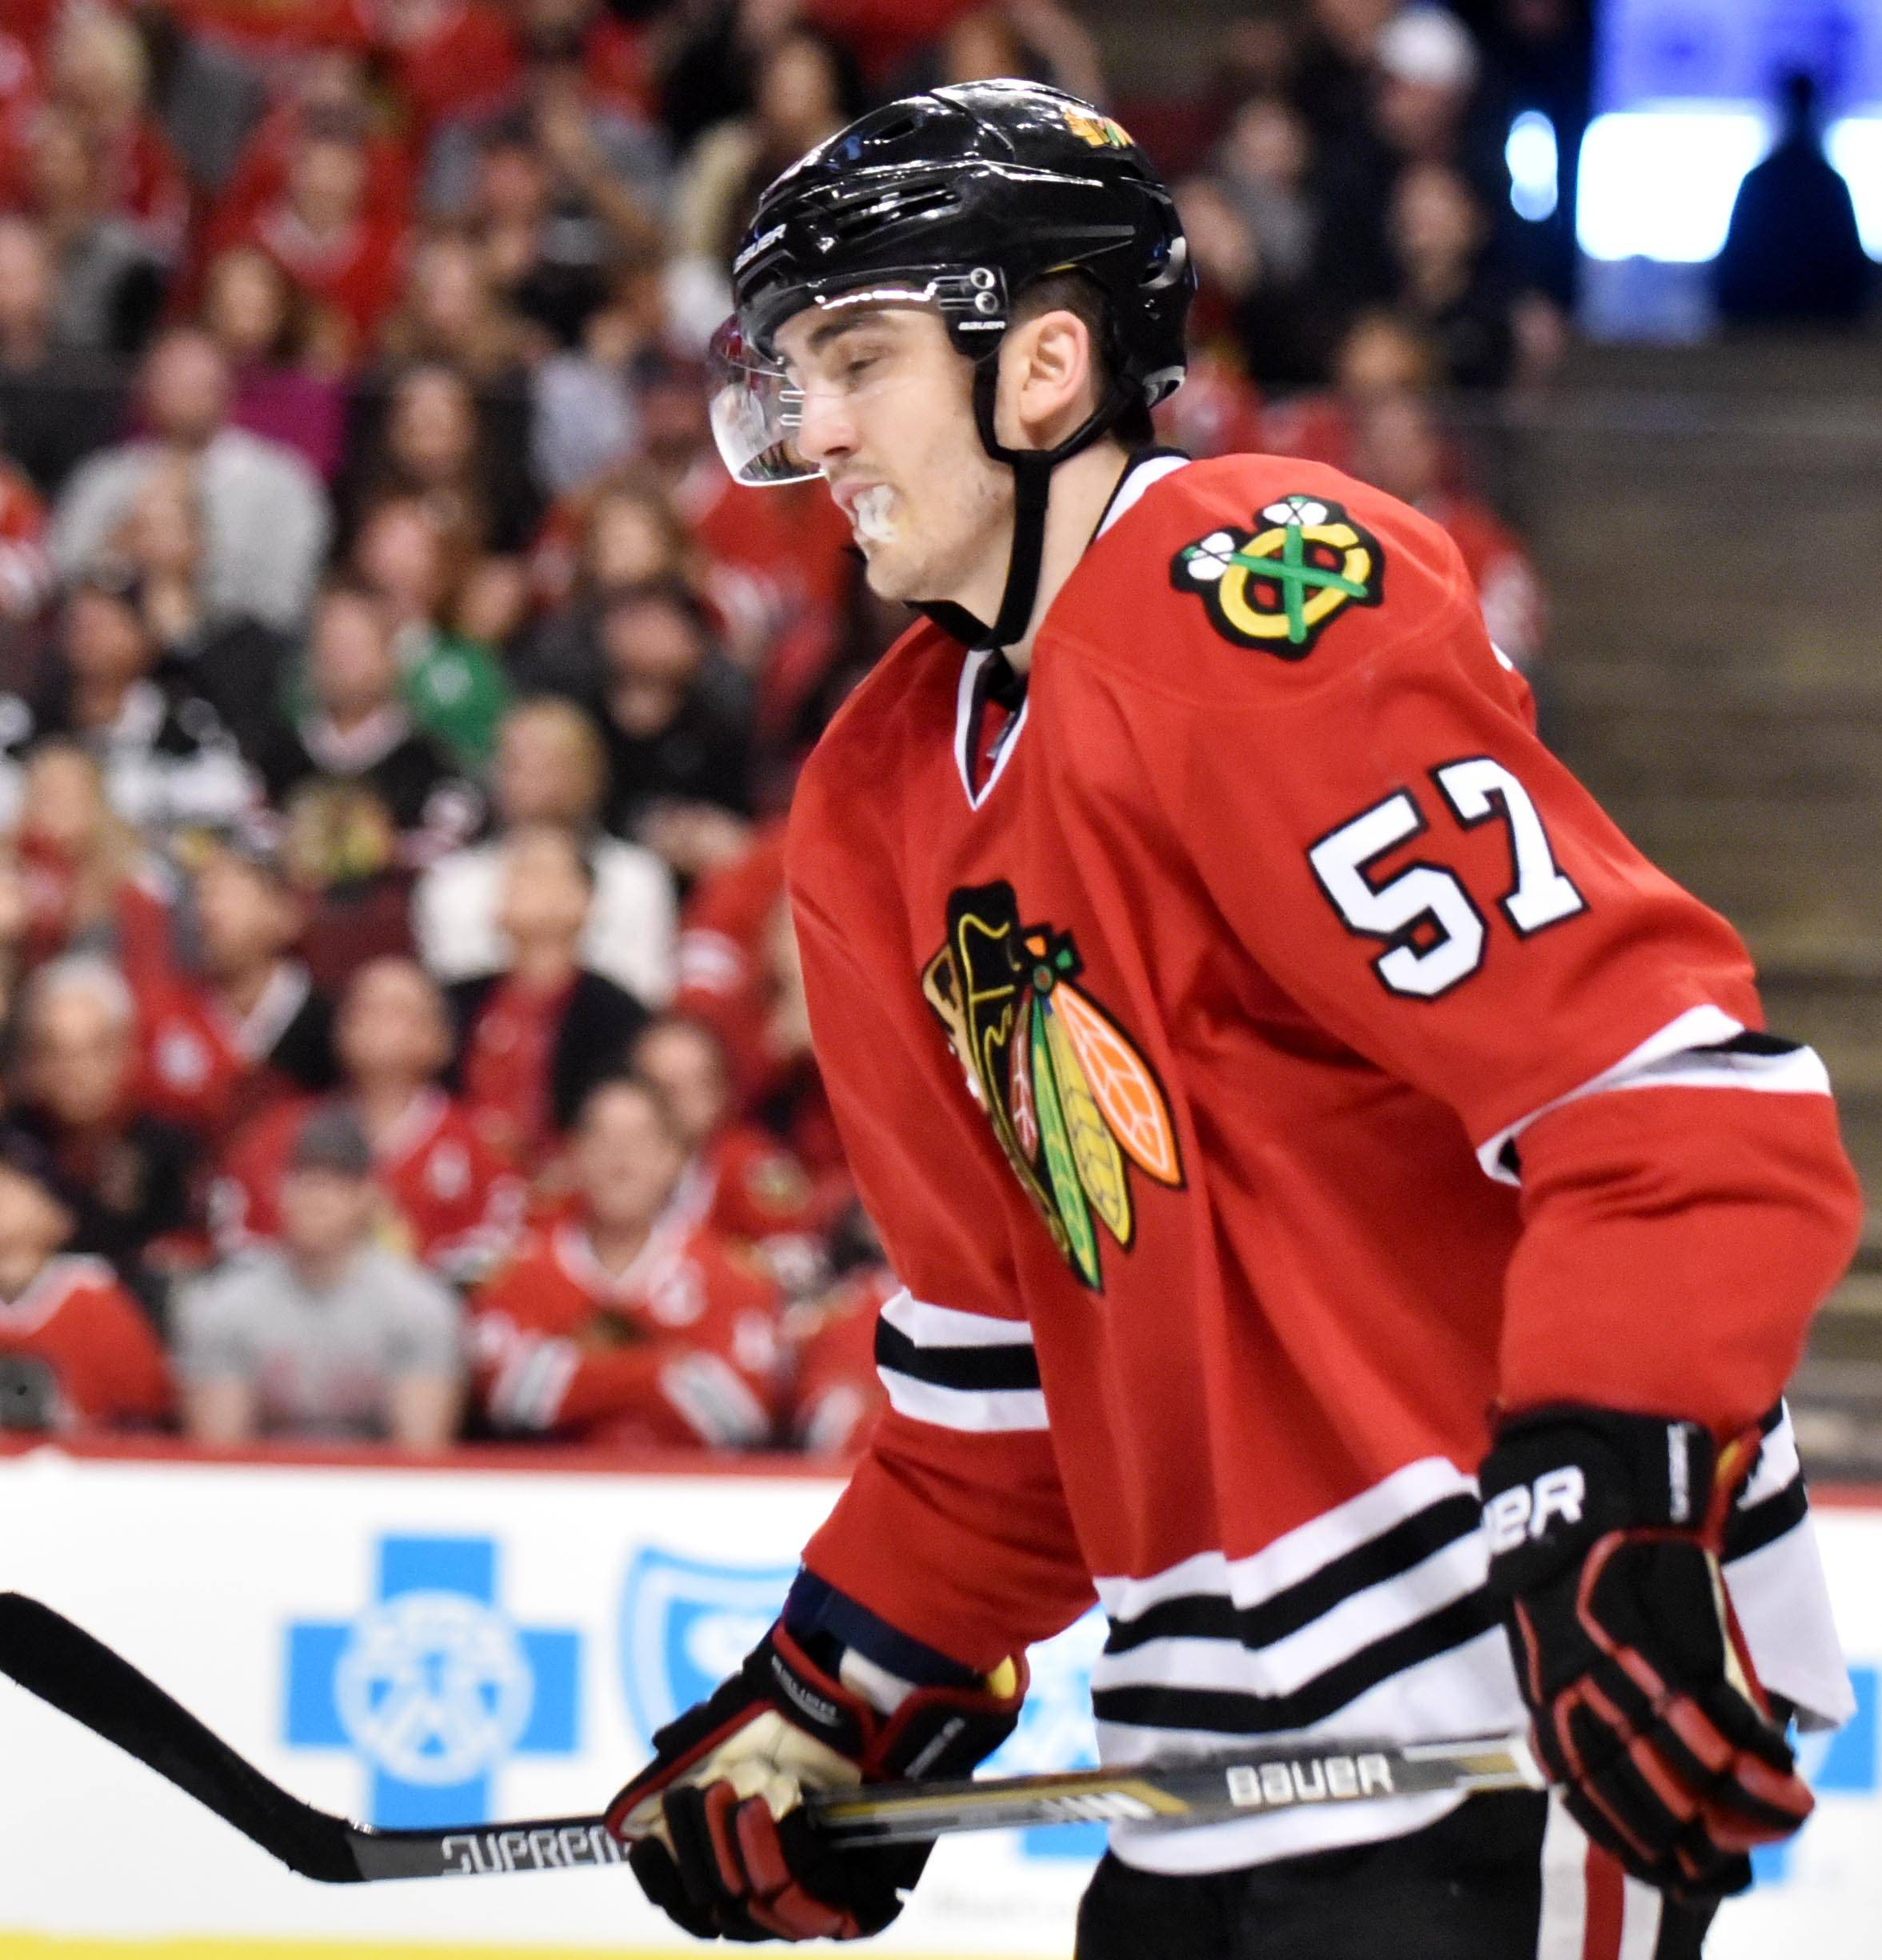 The Chicago Blackhawks did not protect young defenseman Trevor van Riemsdyk in the expansion draft, which means he likely will be selected by the Vegas Golden Knights.